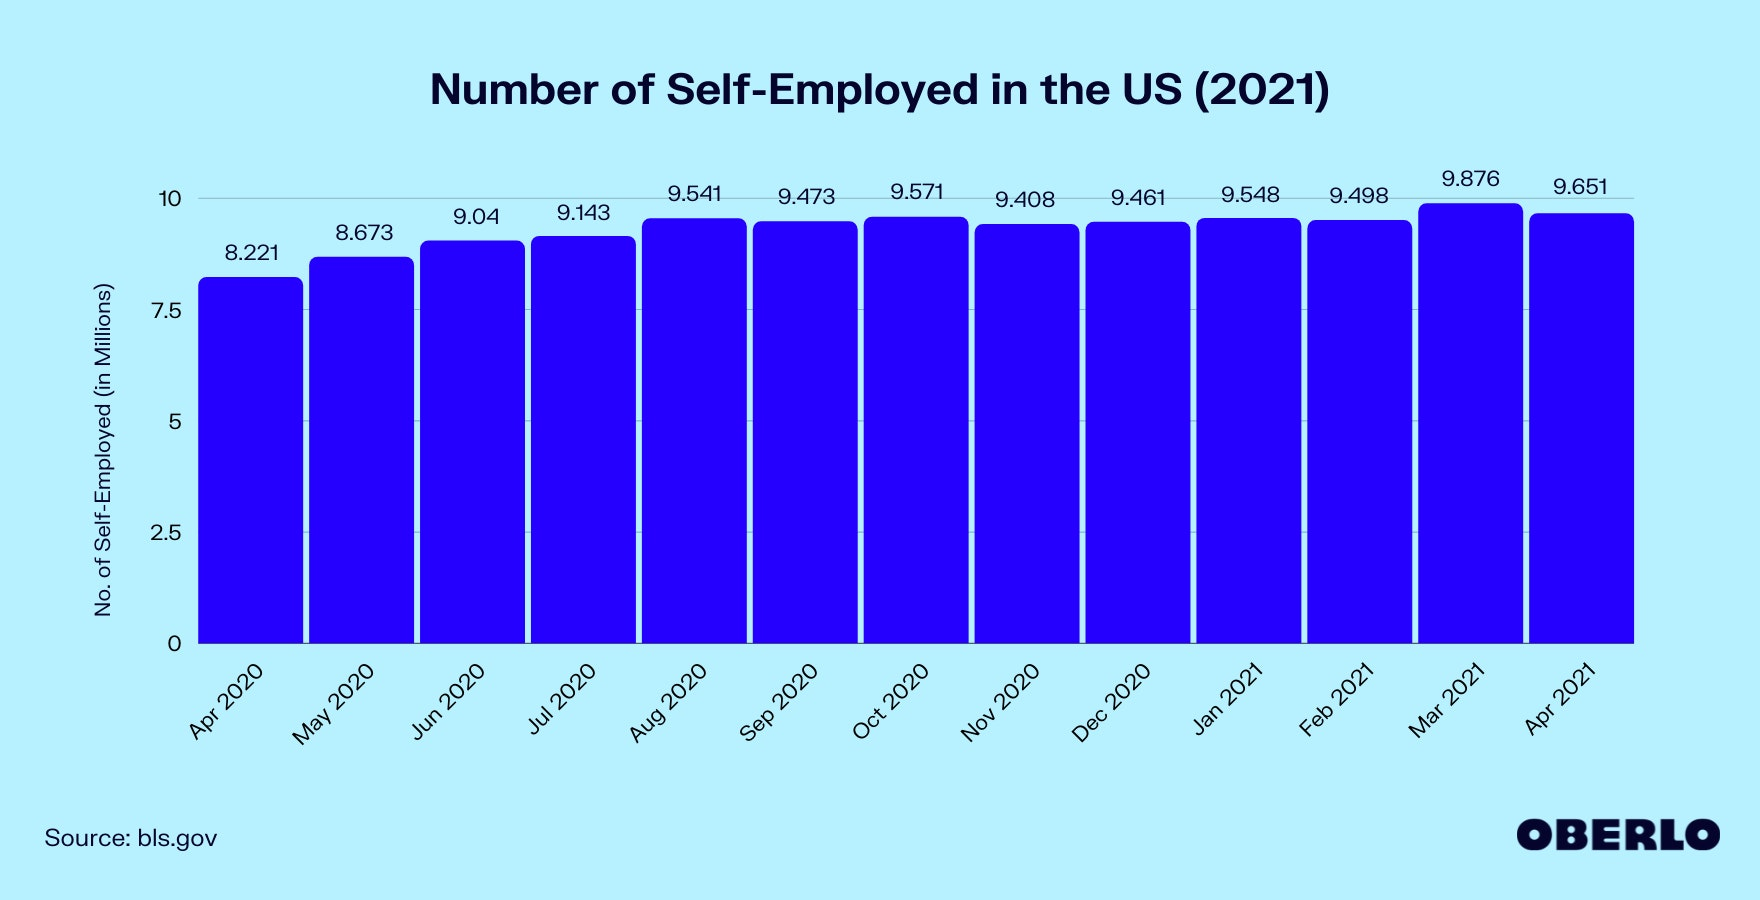 Chart of Number of Self-Employed in the US (2021)